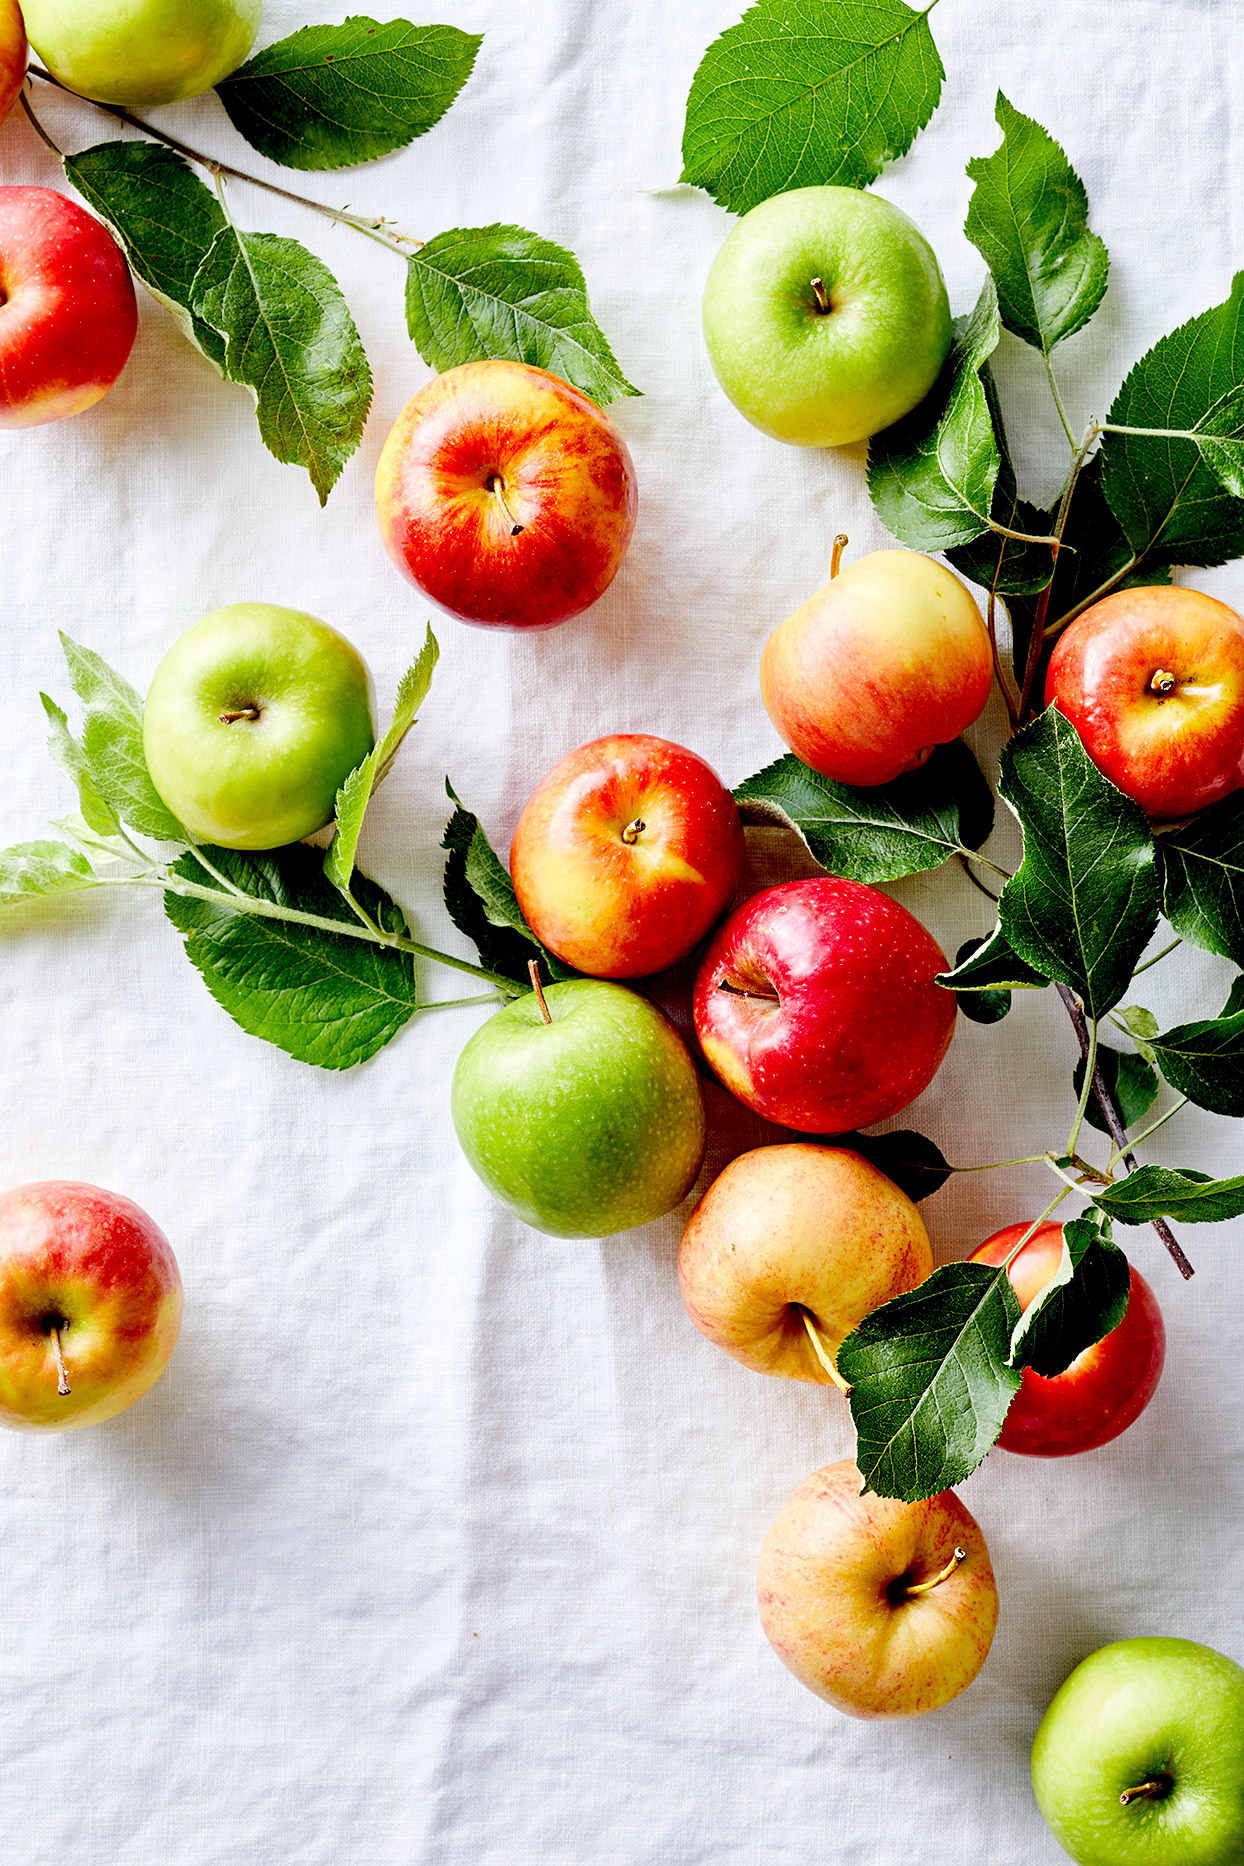 Take a Bite Out of the Four New Apples of 2019